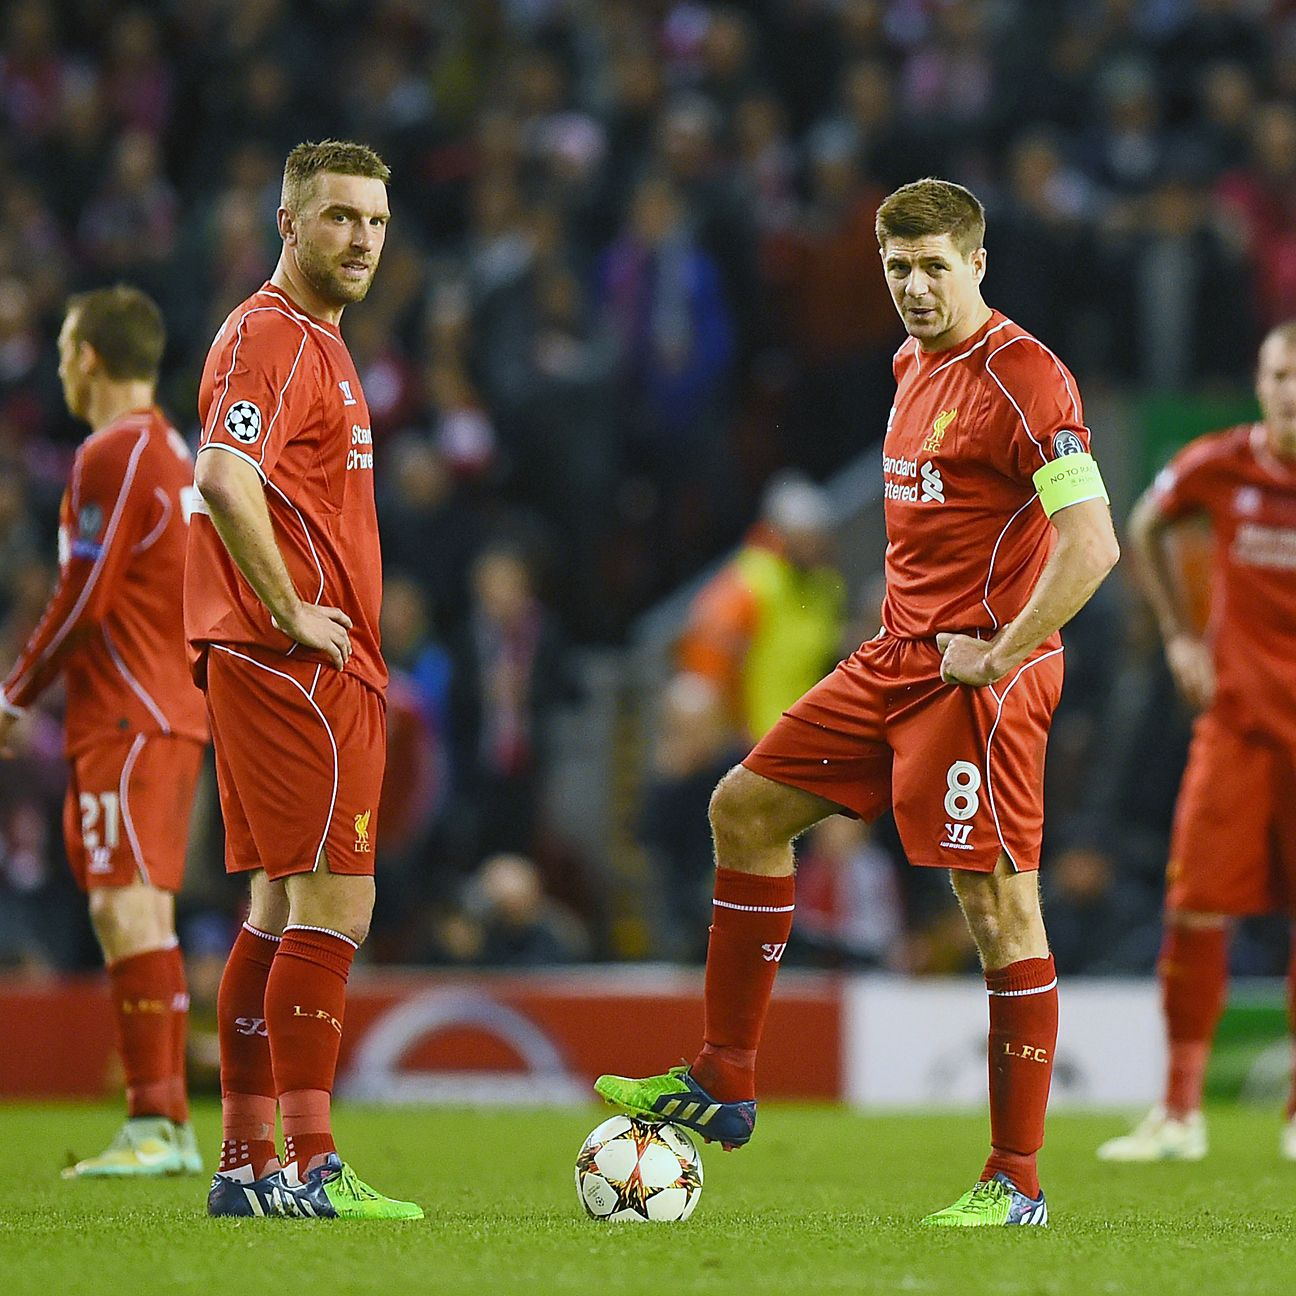 Rickie Lambert, left, was unable to deliver a big time performance for Liverpool, whose only goal came from Steven Gerrard, right.